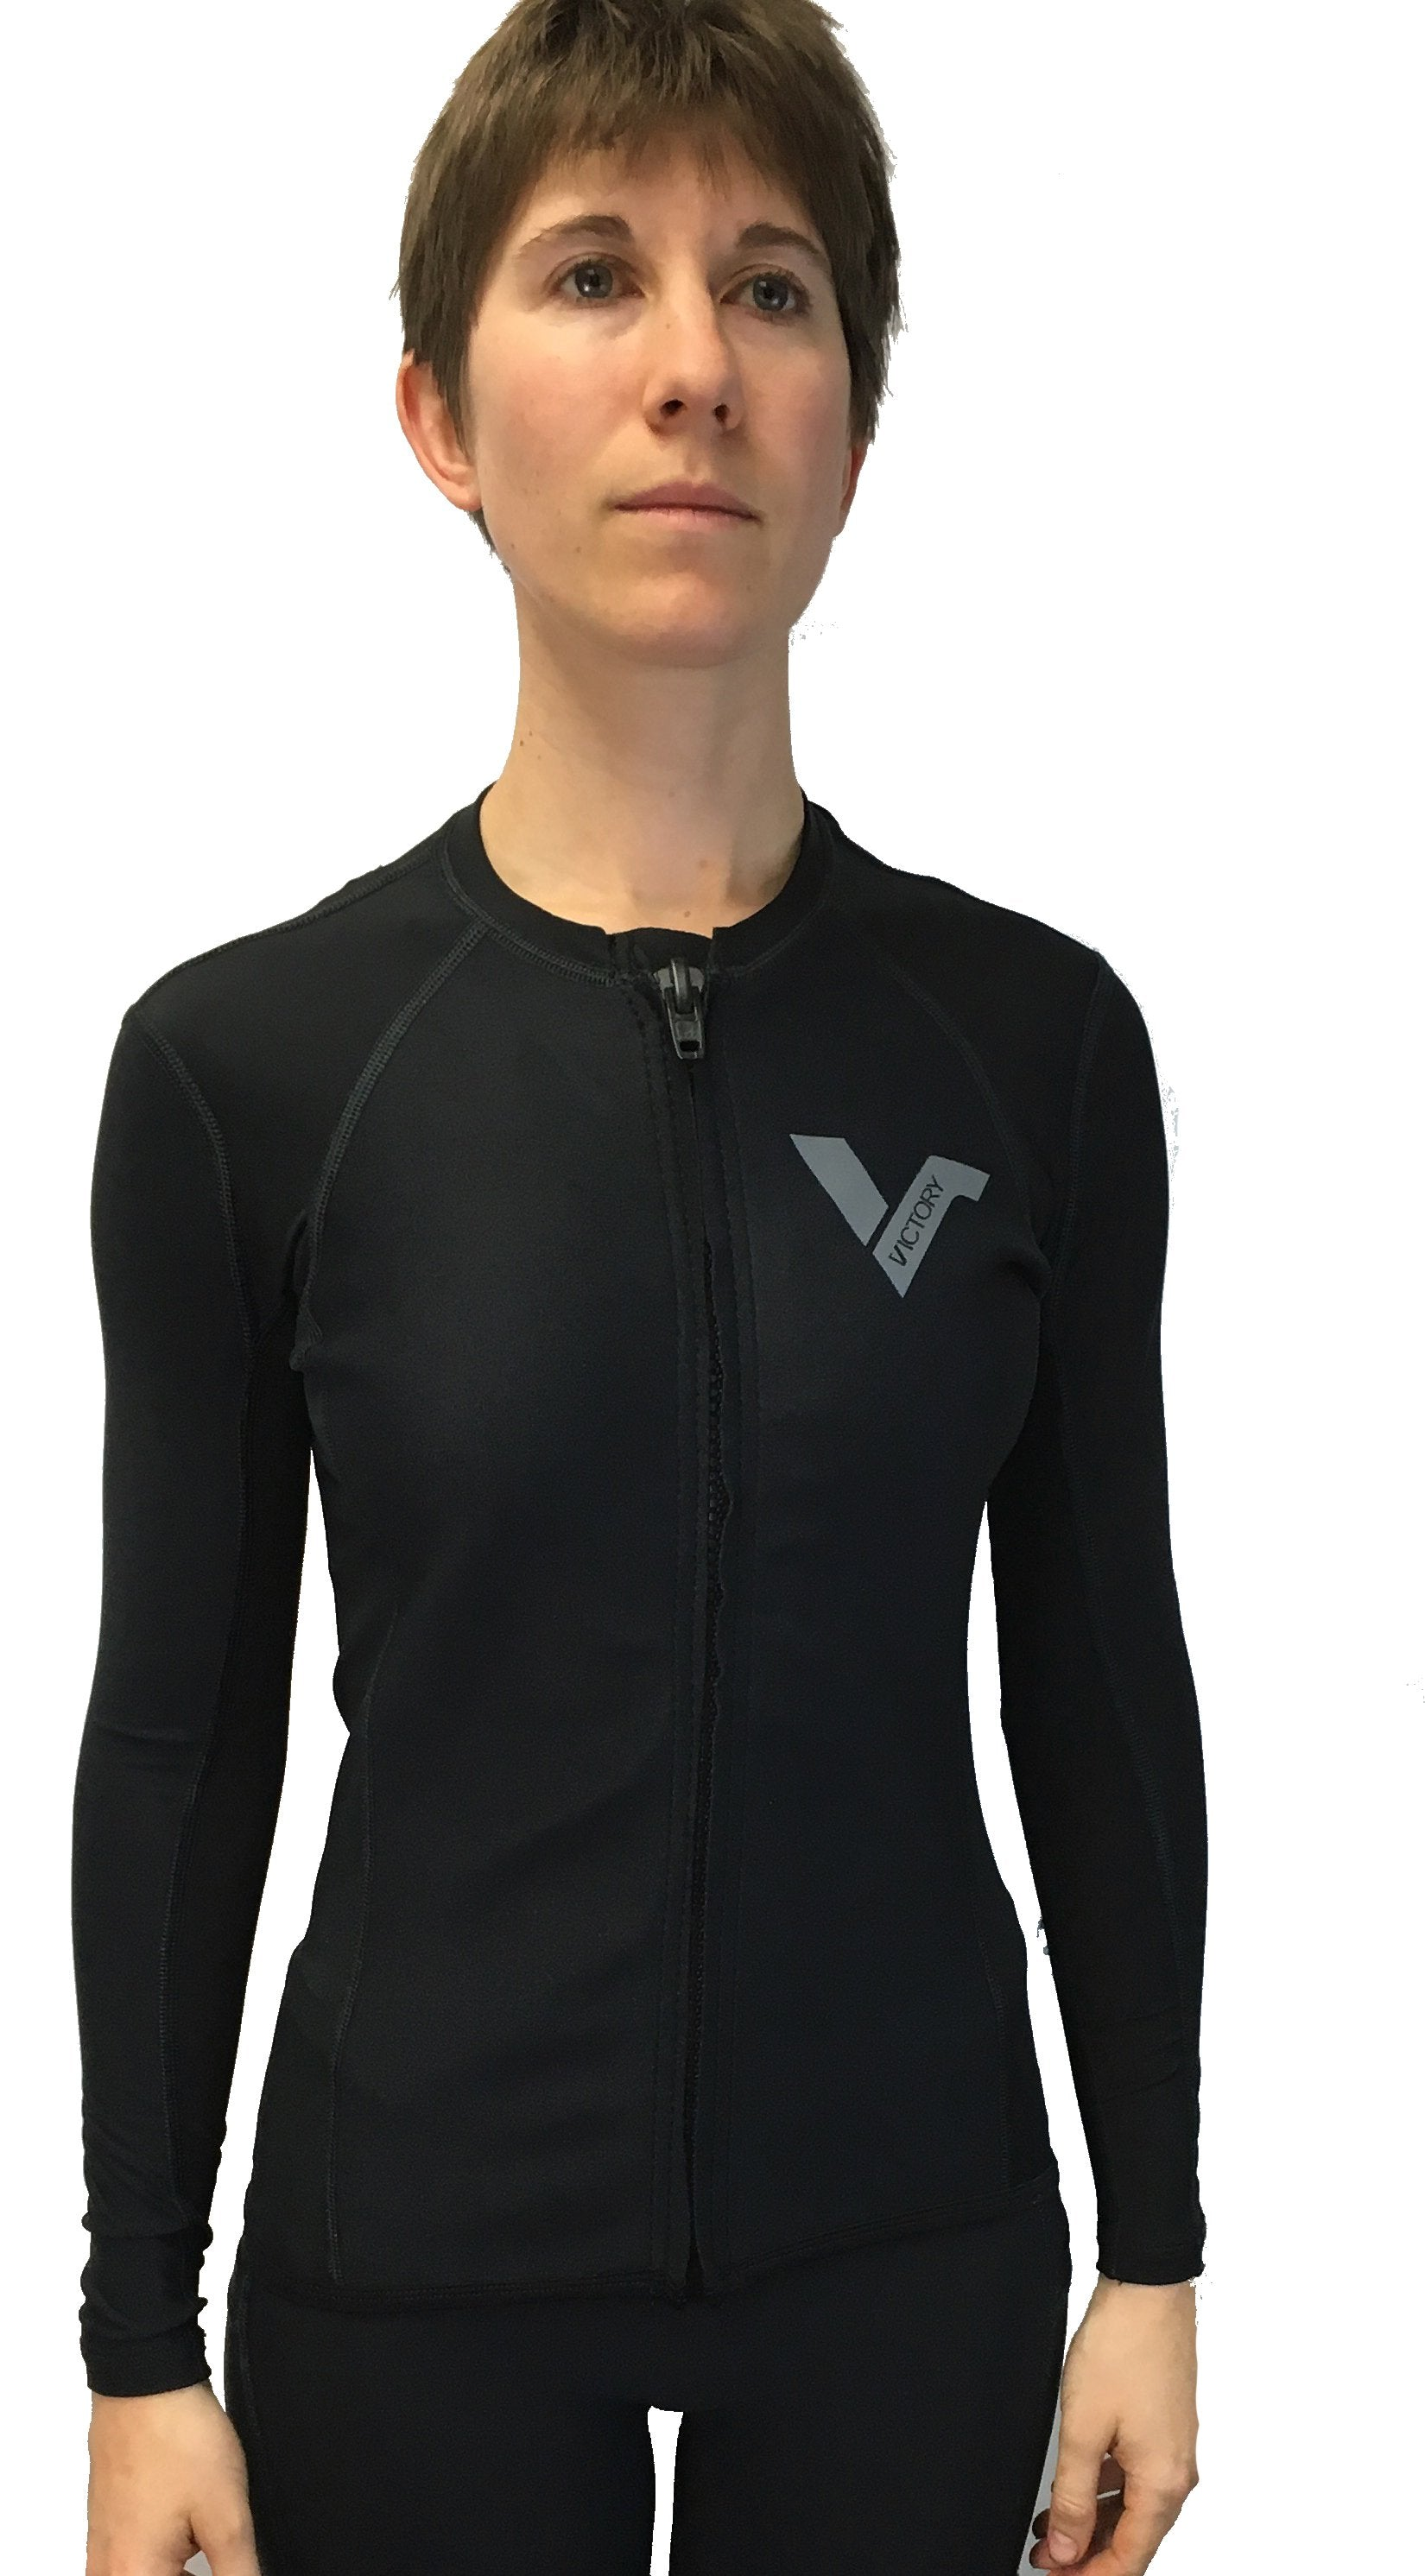 Women's Neoprene Zipper Jacket